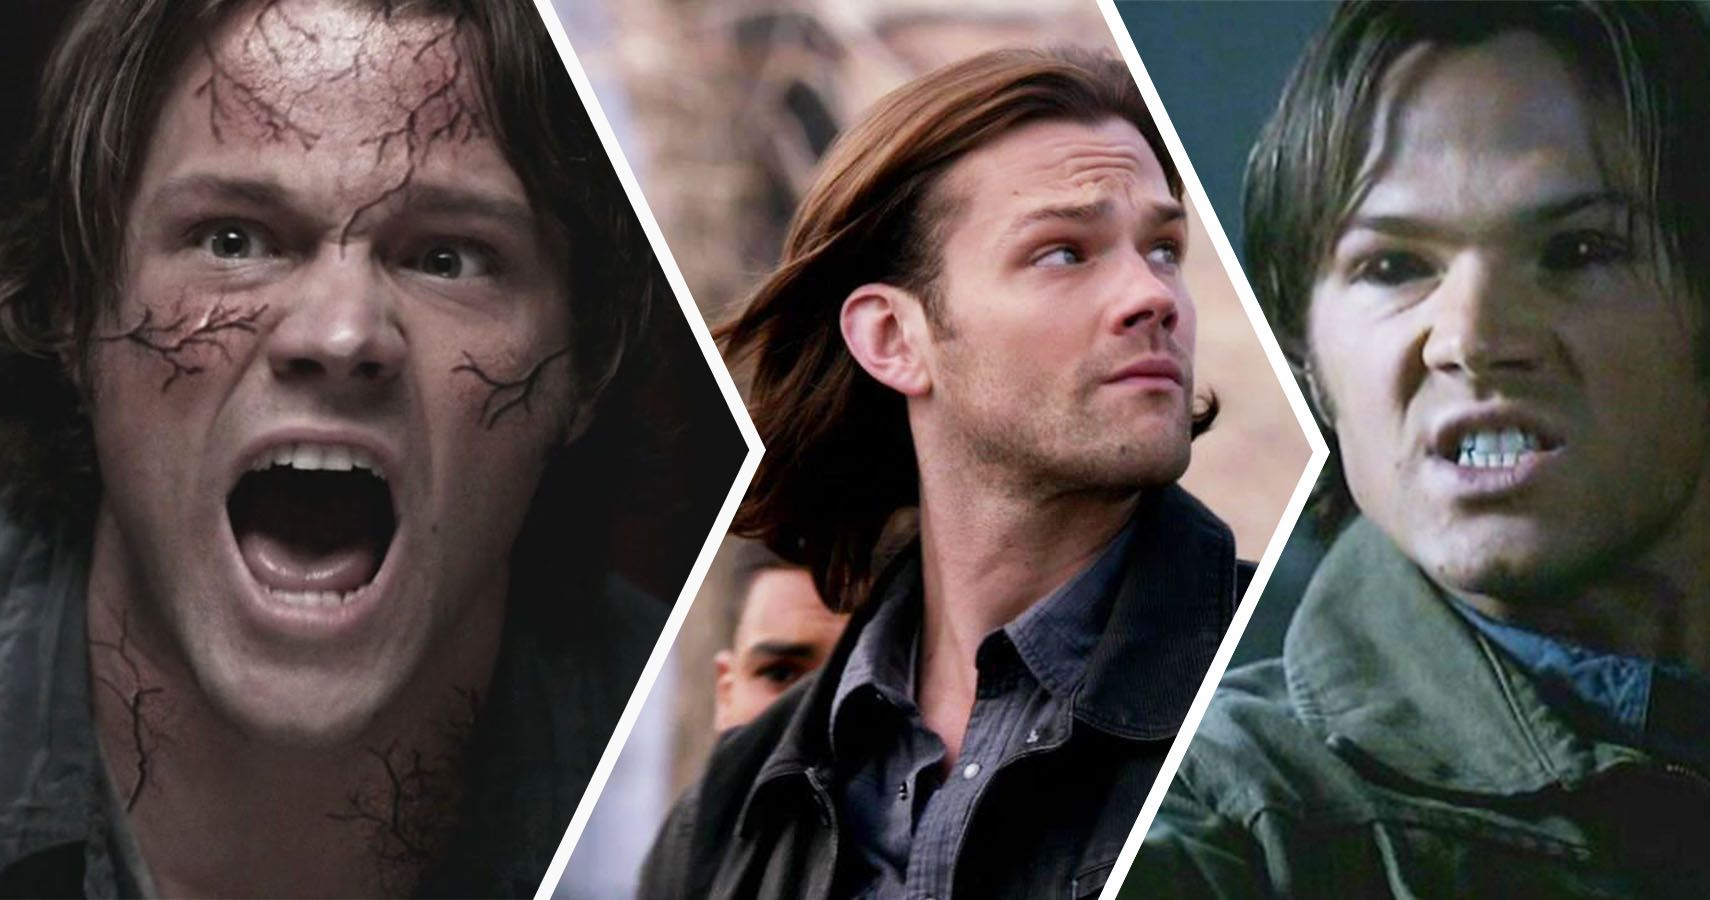 Supernatural: 20 Things Wrong With Sam Winchester We All